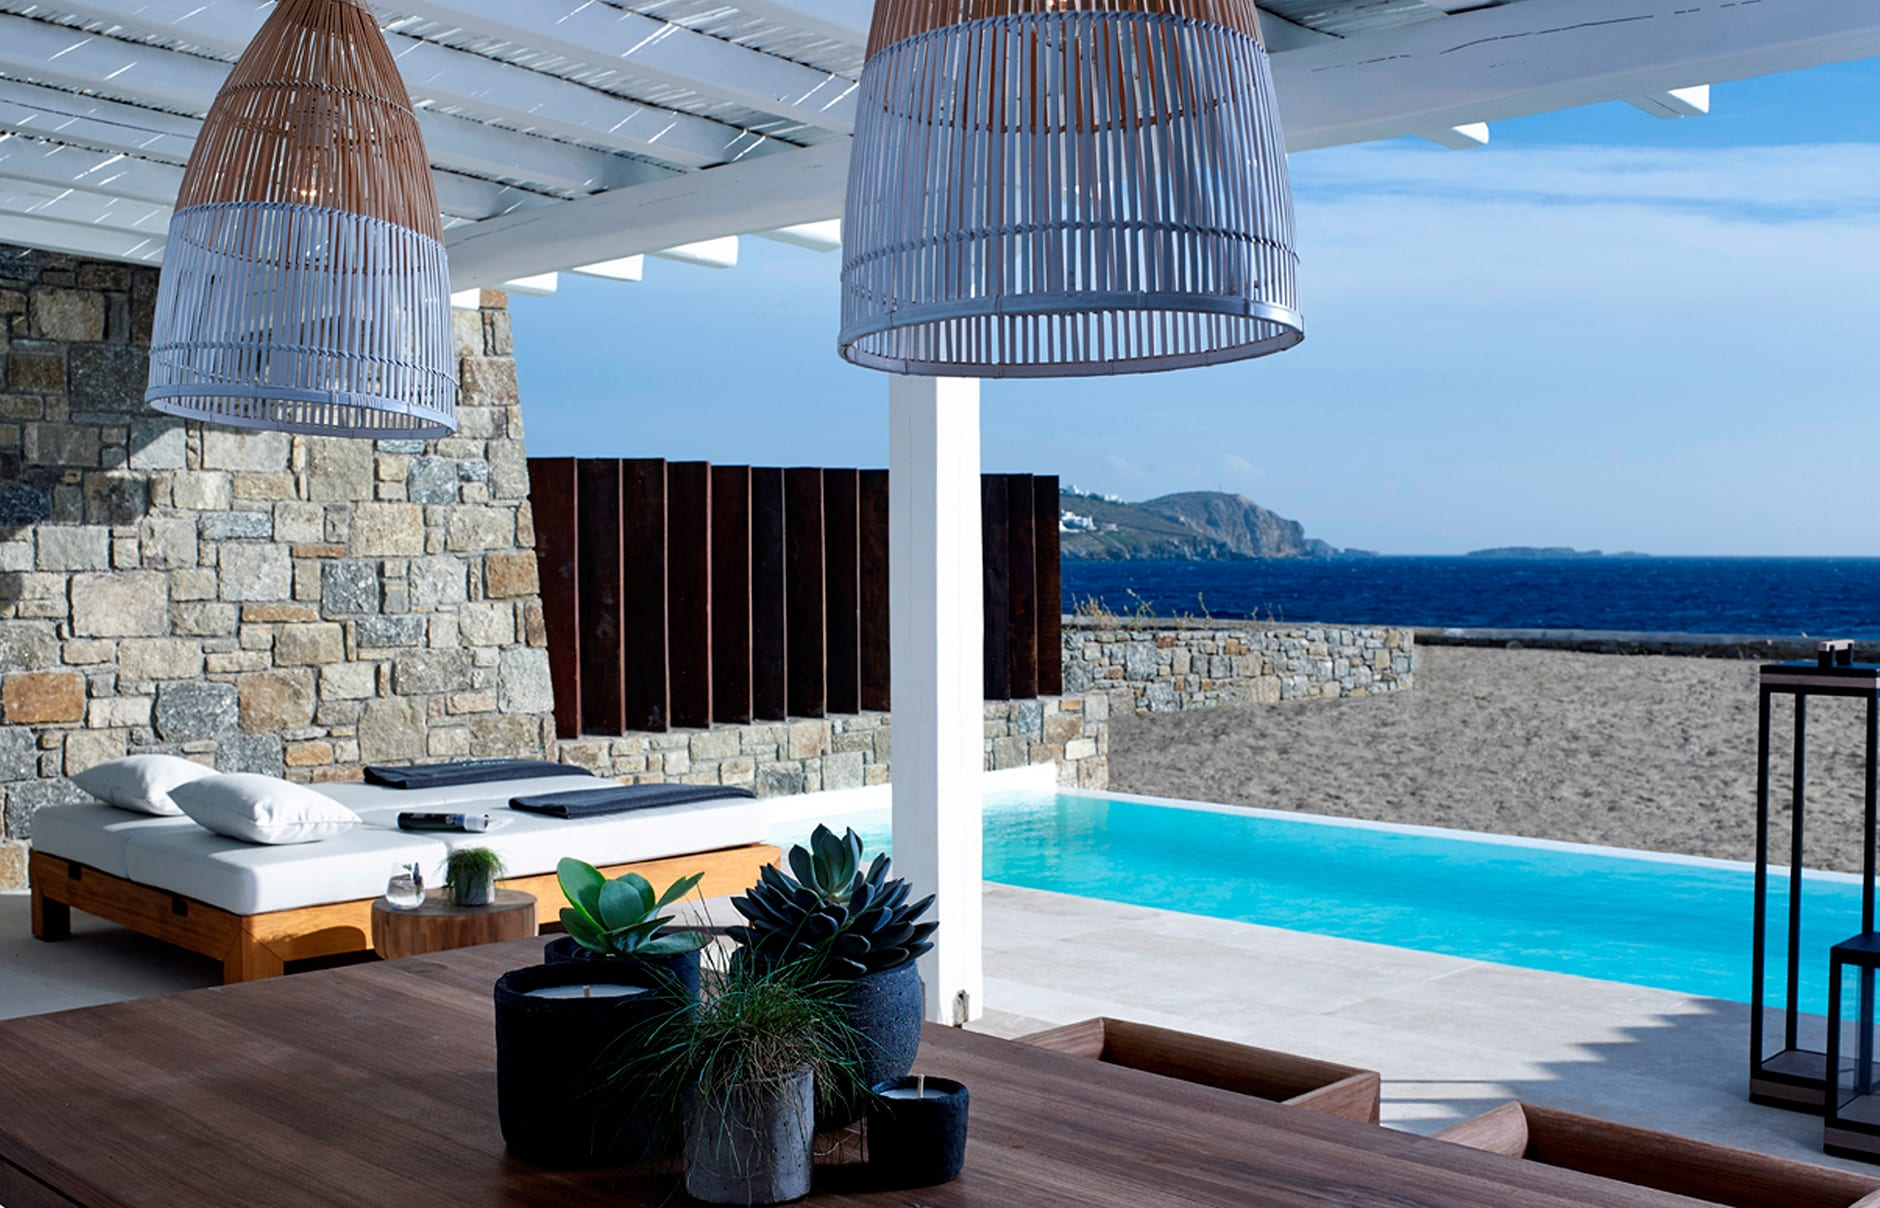 Bill & Coo Mykonos, Greece. Hotel Review by TravelPlusStyle. Photo © Bill & Coo Mykonos